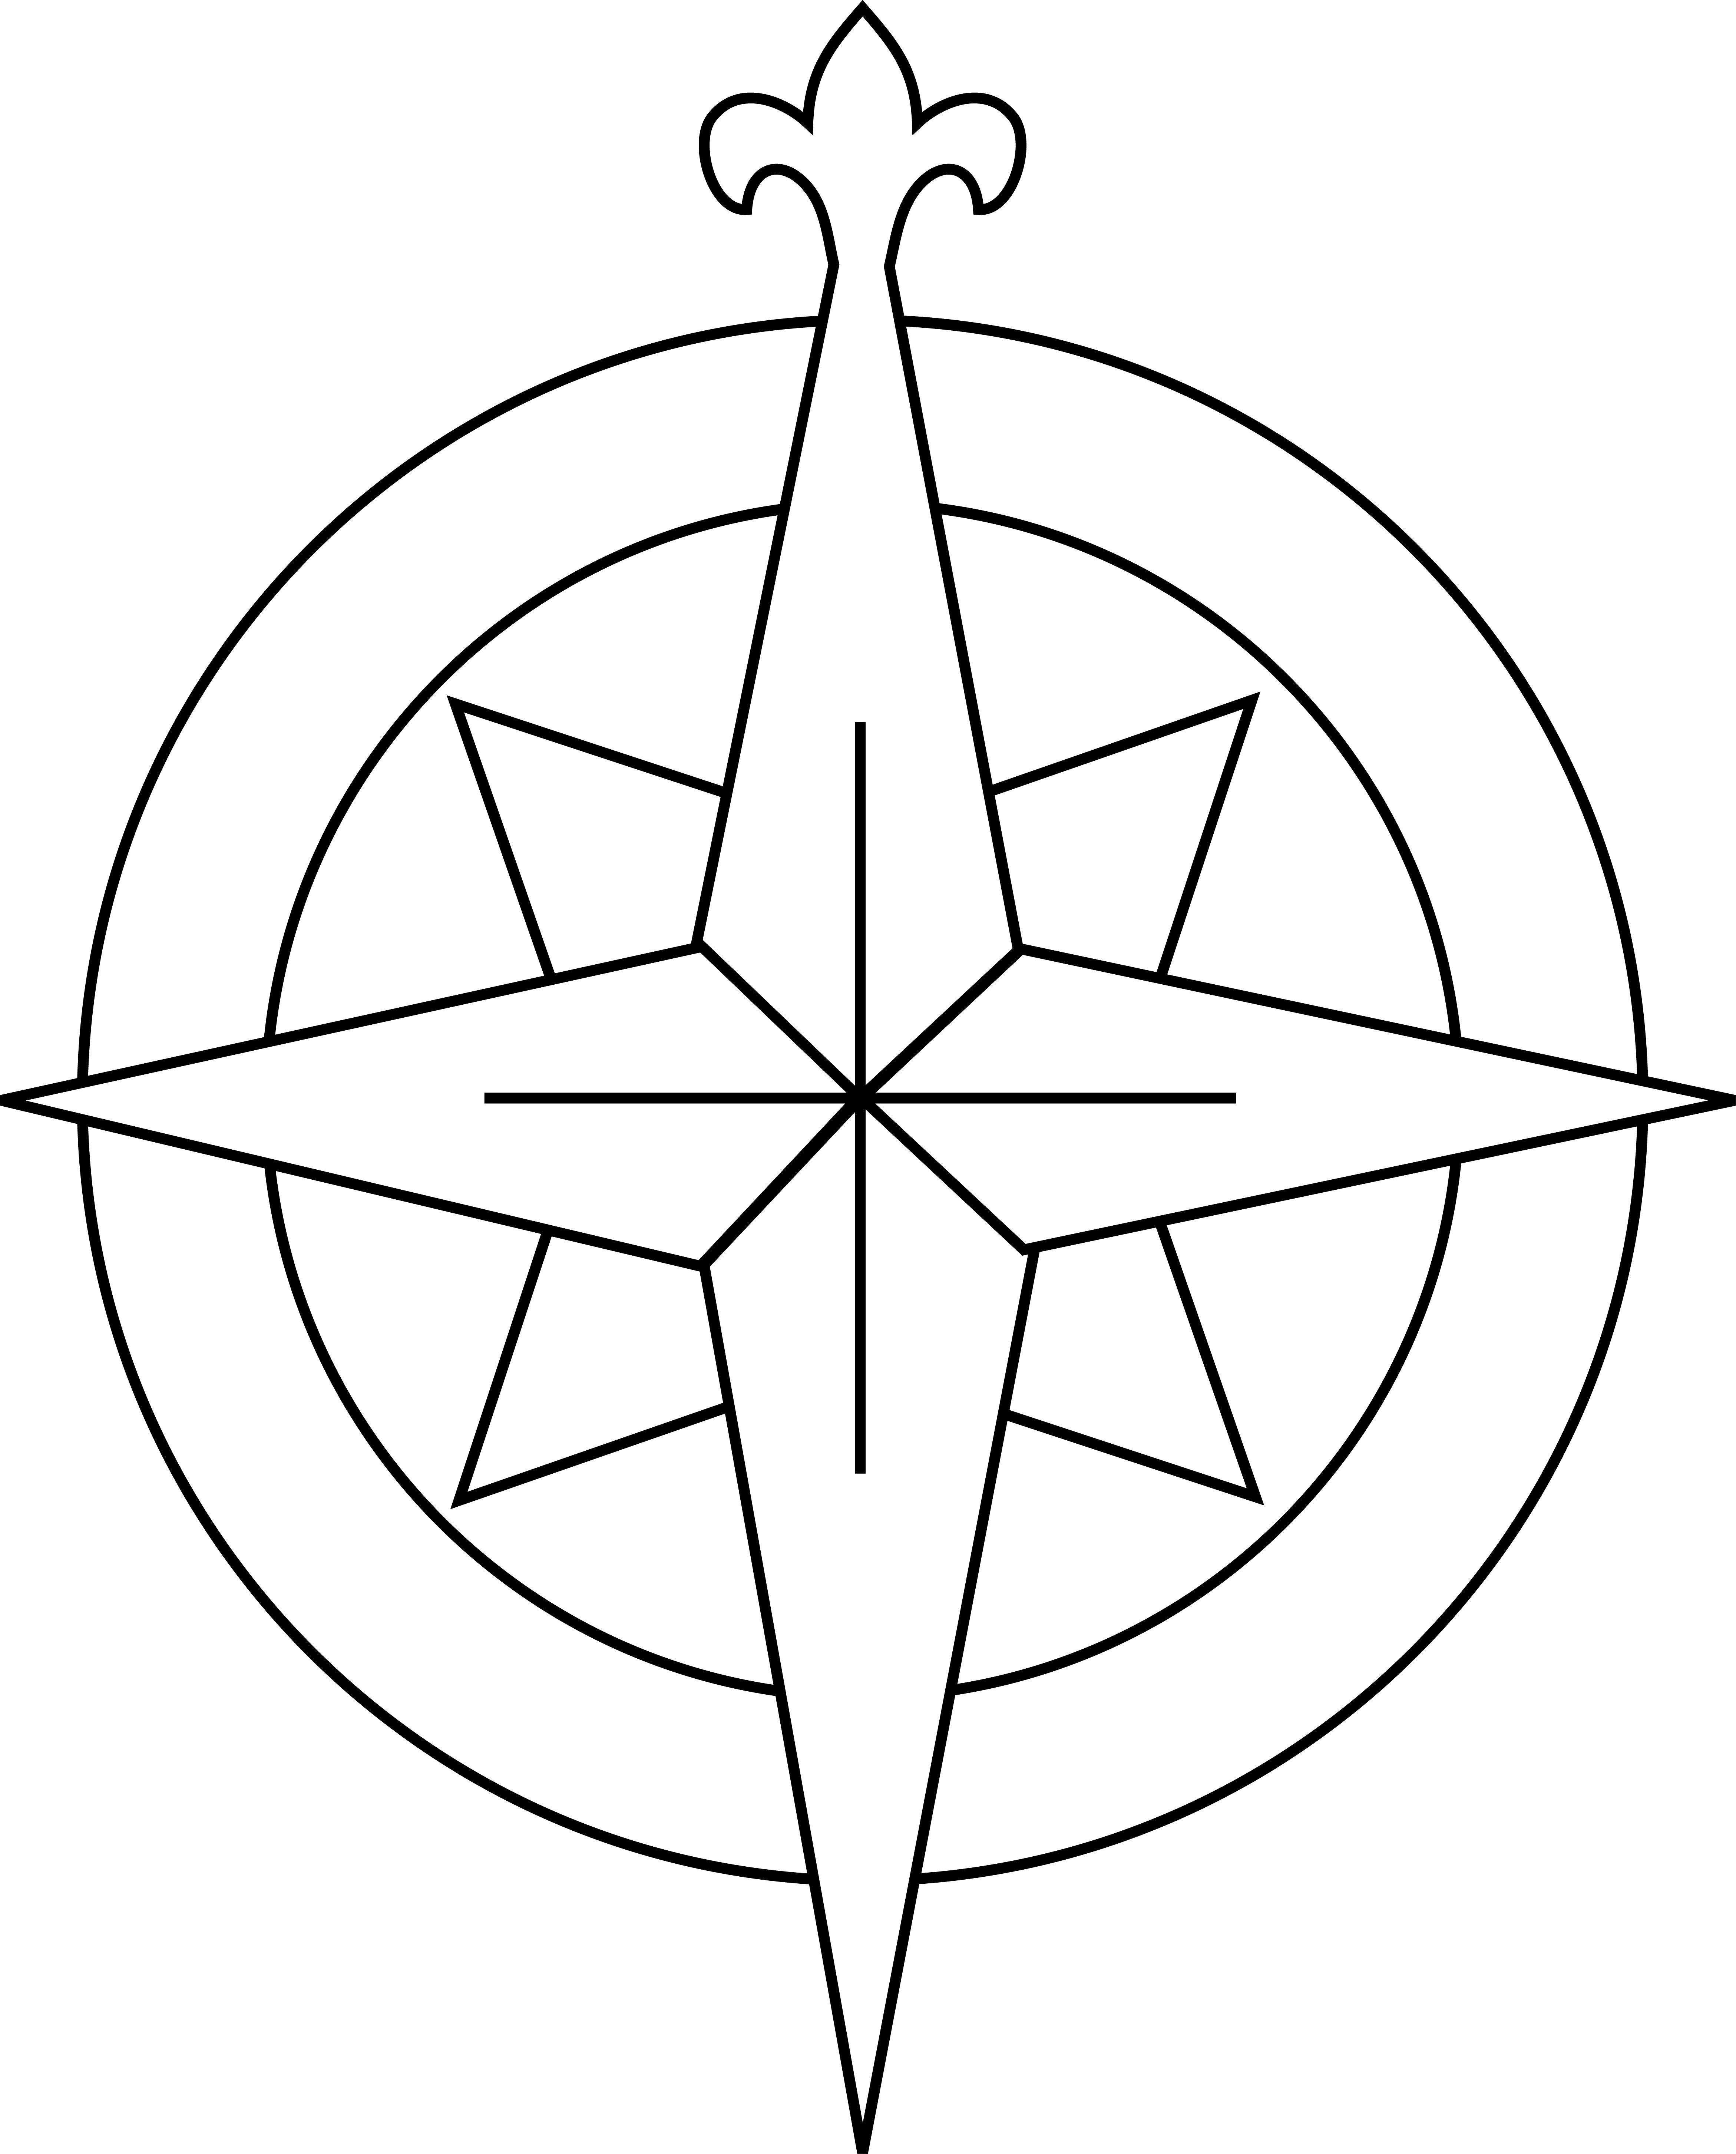 Compass Rose Pattern